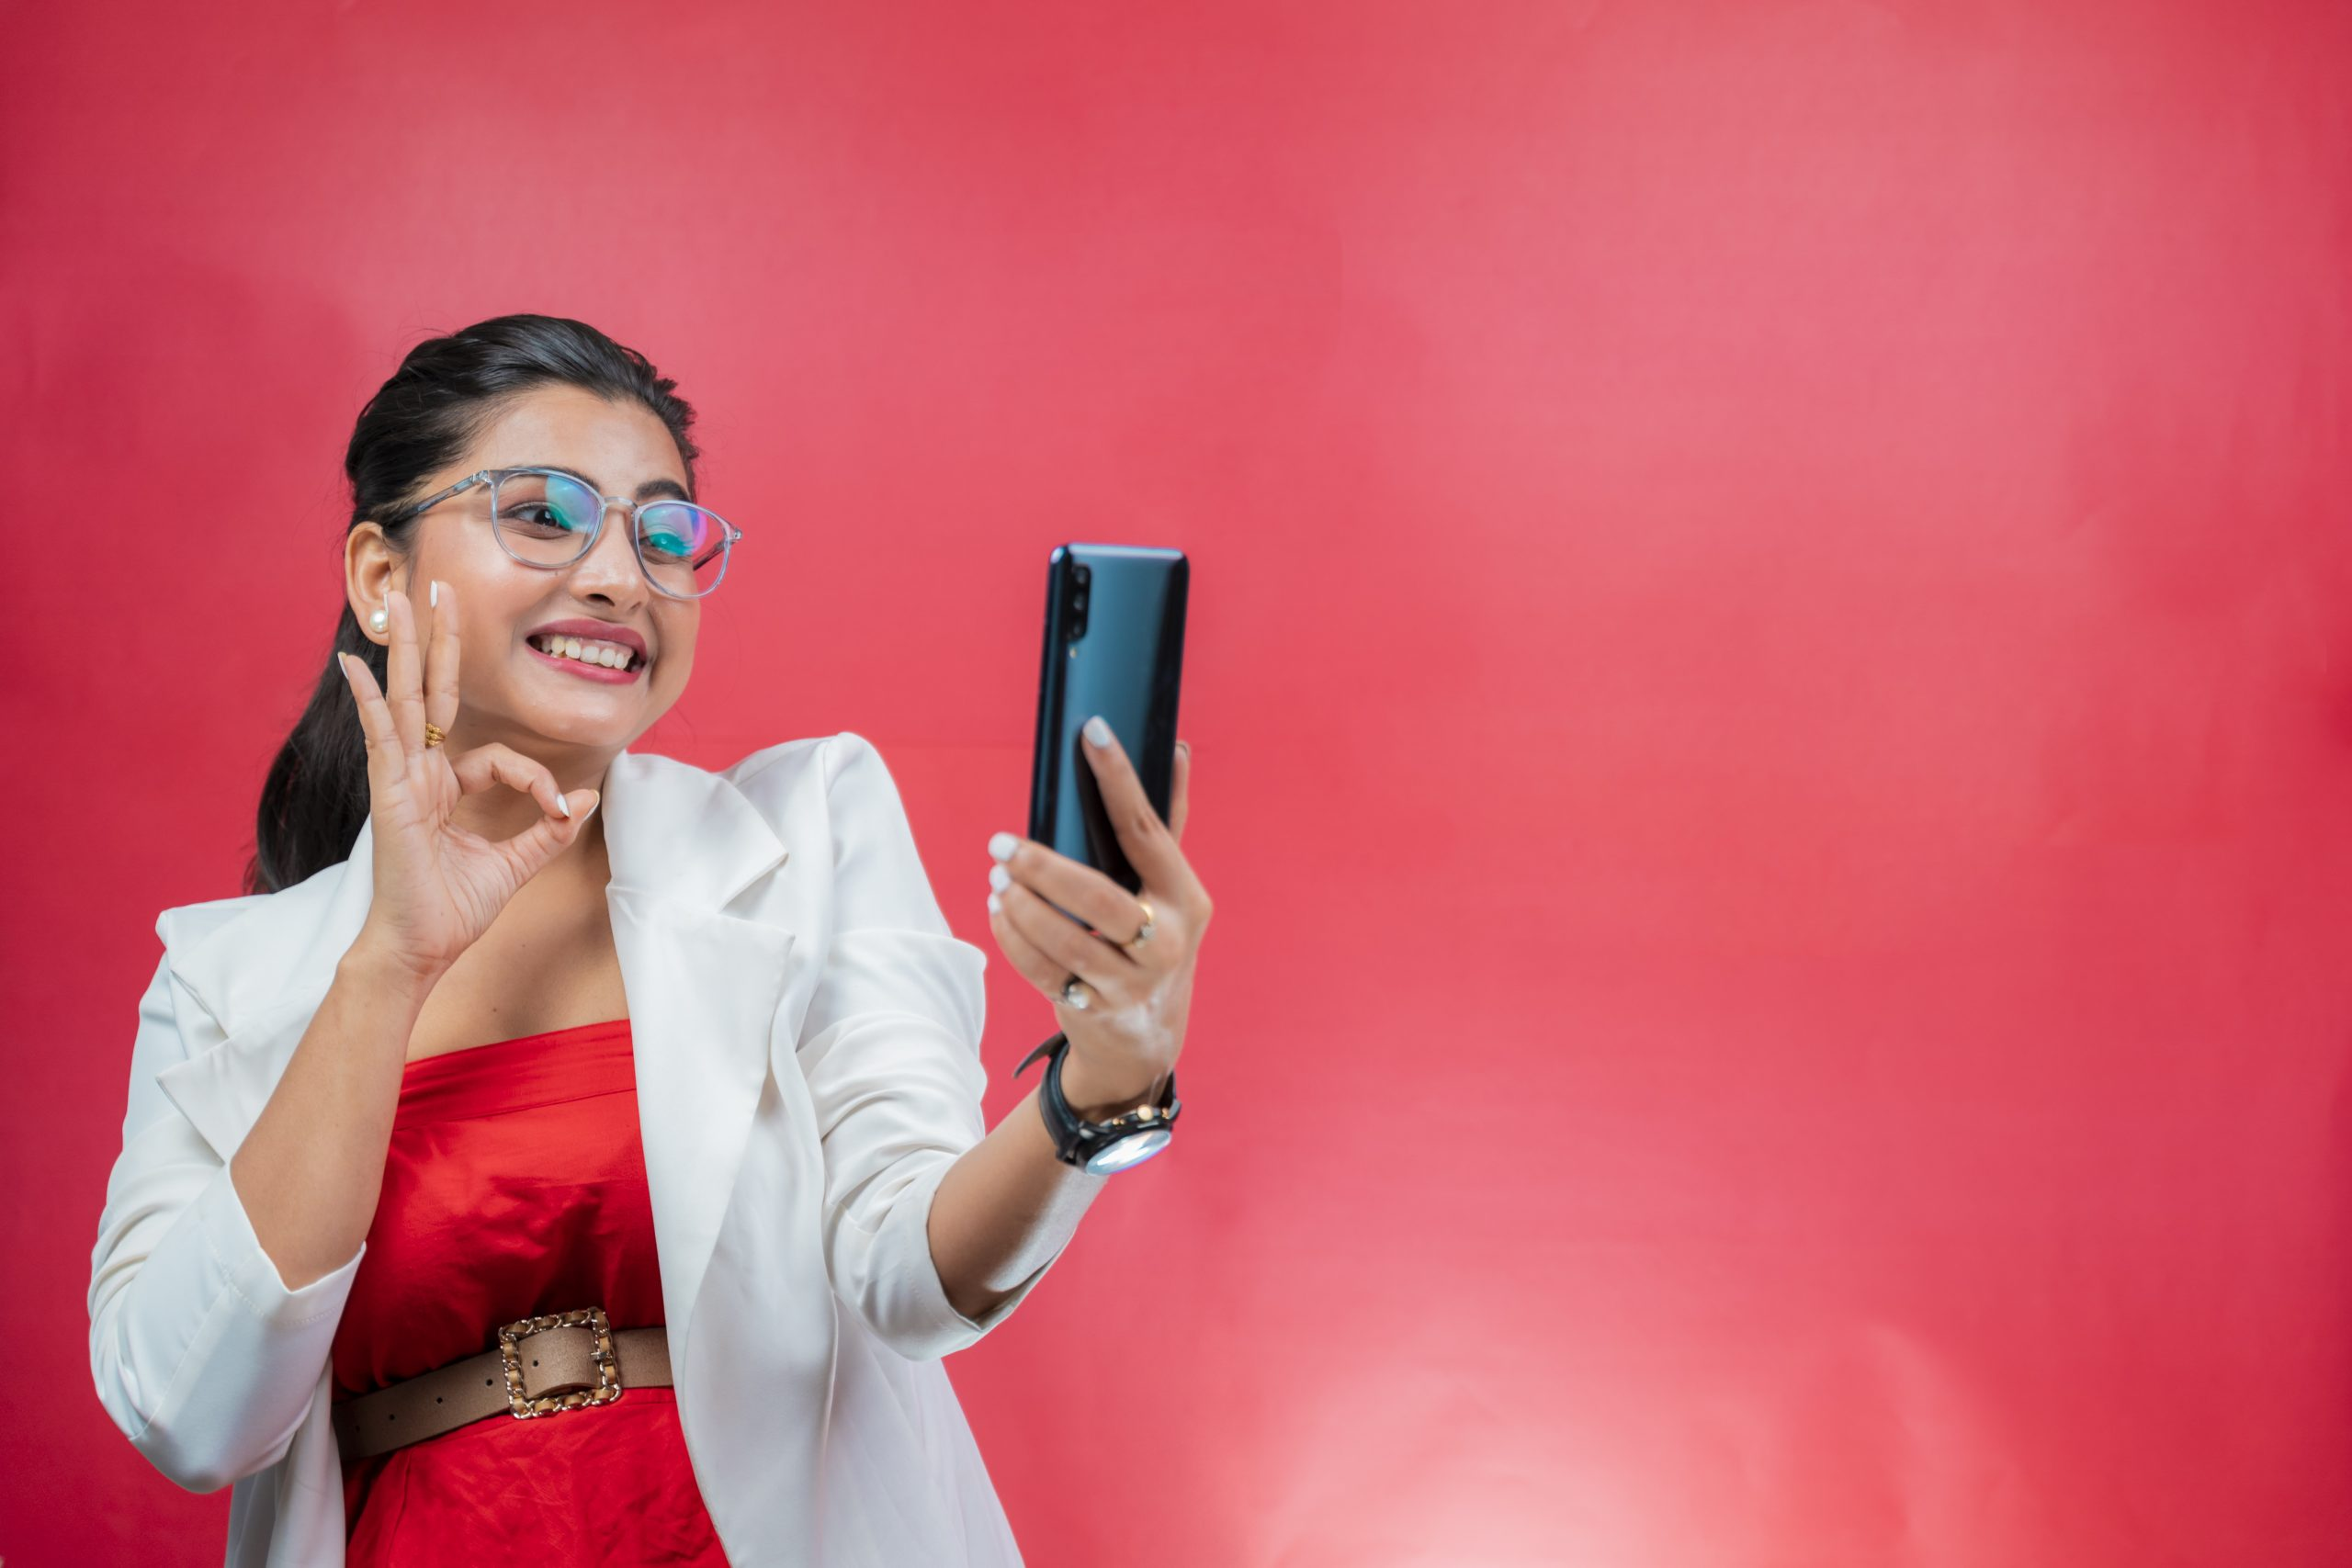 Happy young woman smiling and looking towards the phone and making OK gesture